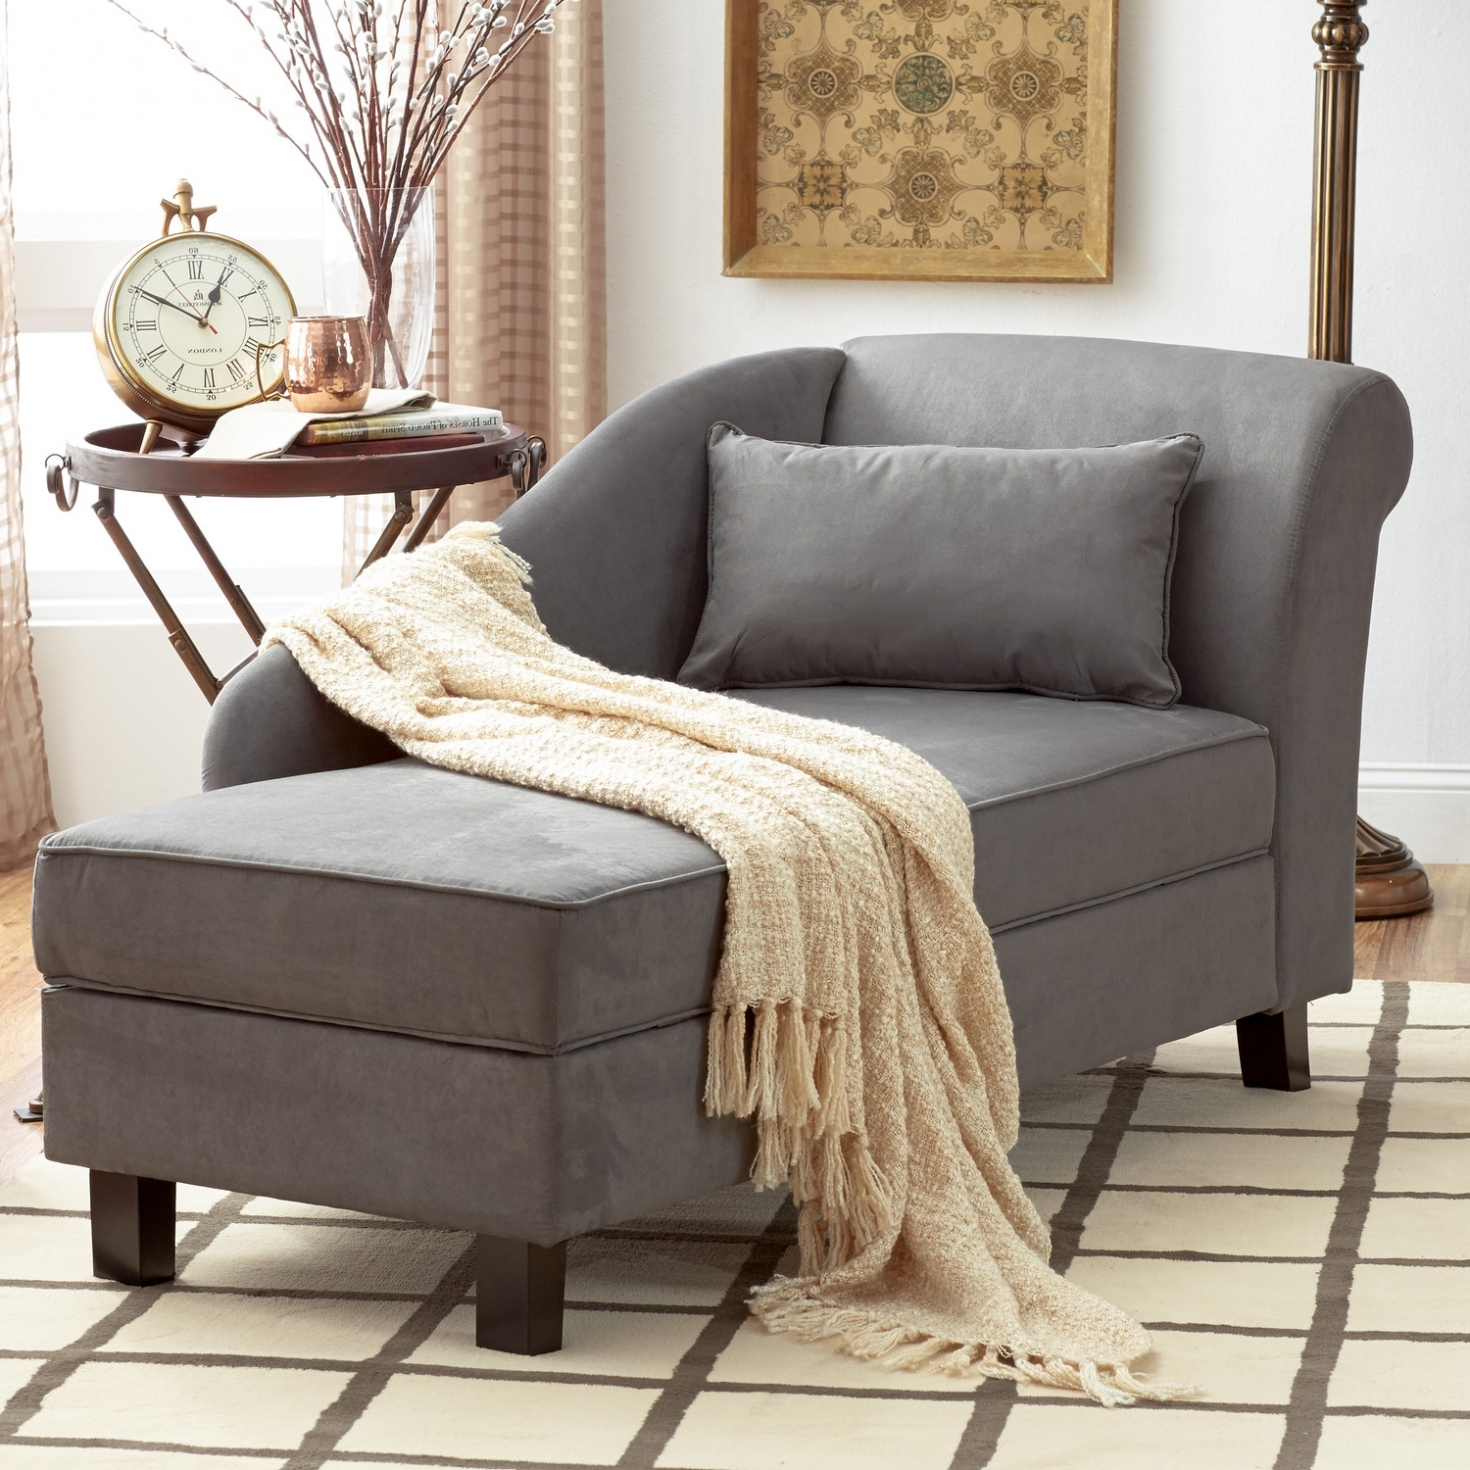 Cheap Indoor Chaise Lounges Inside Popular Convertible Chair : Lounge Folding Chaise Lounge Chairs Outdoor (View 2 of 15)